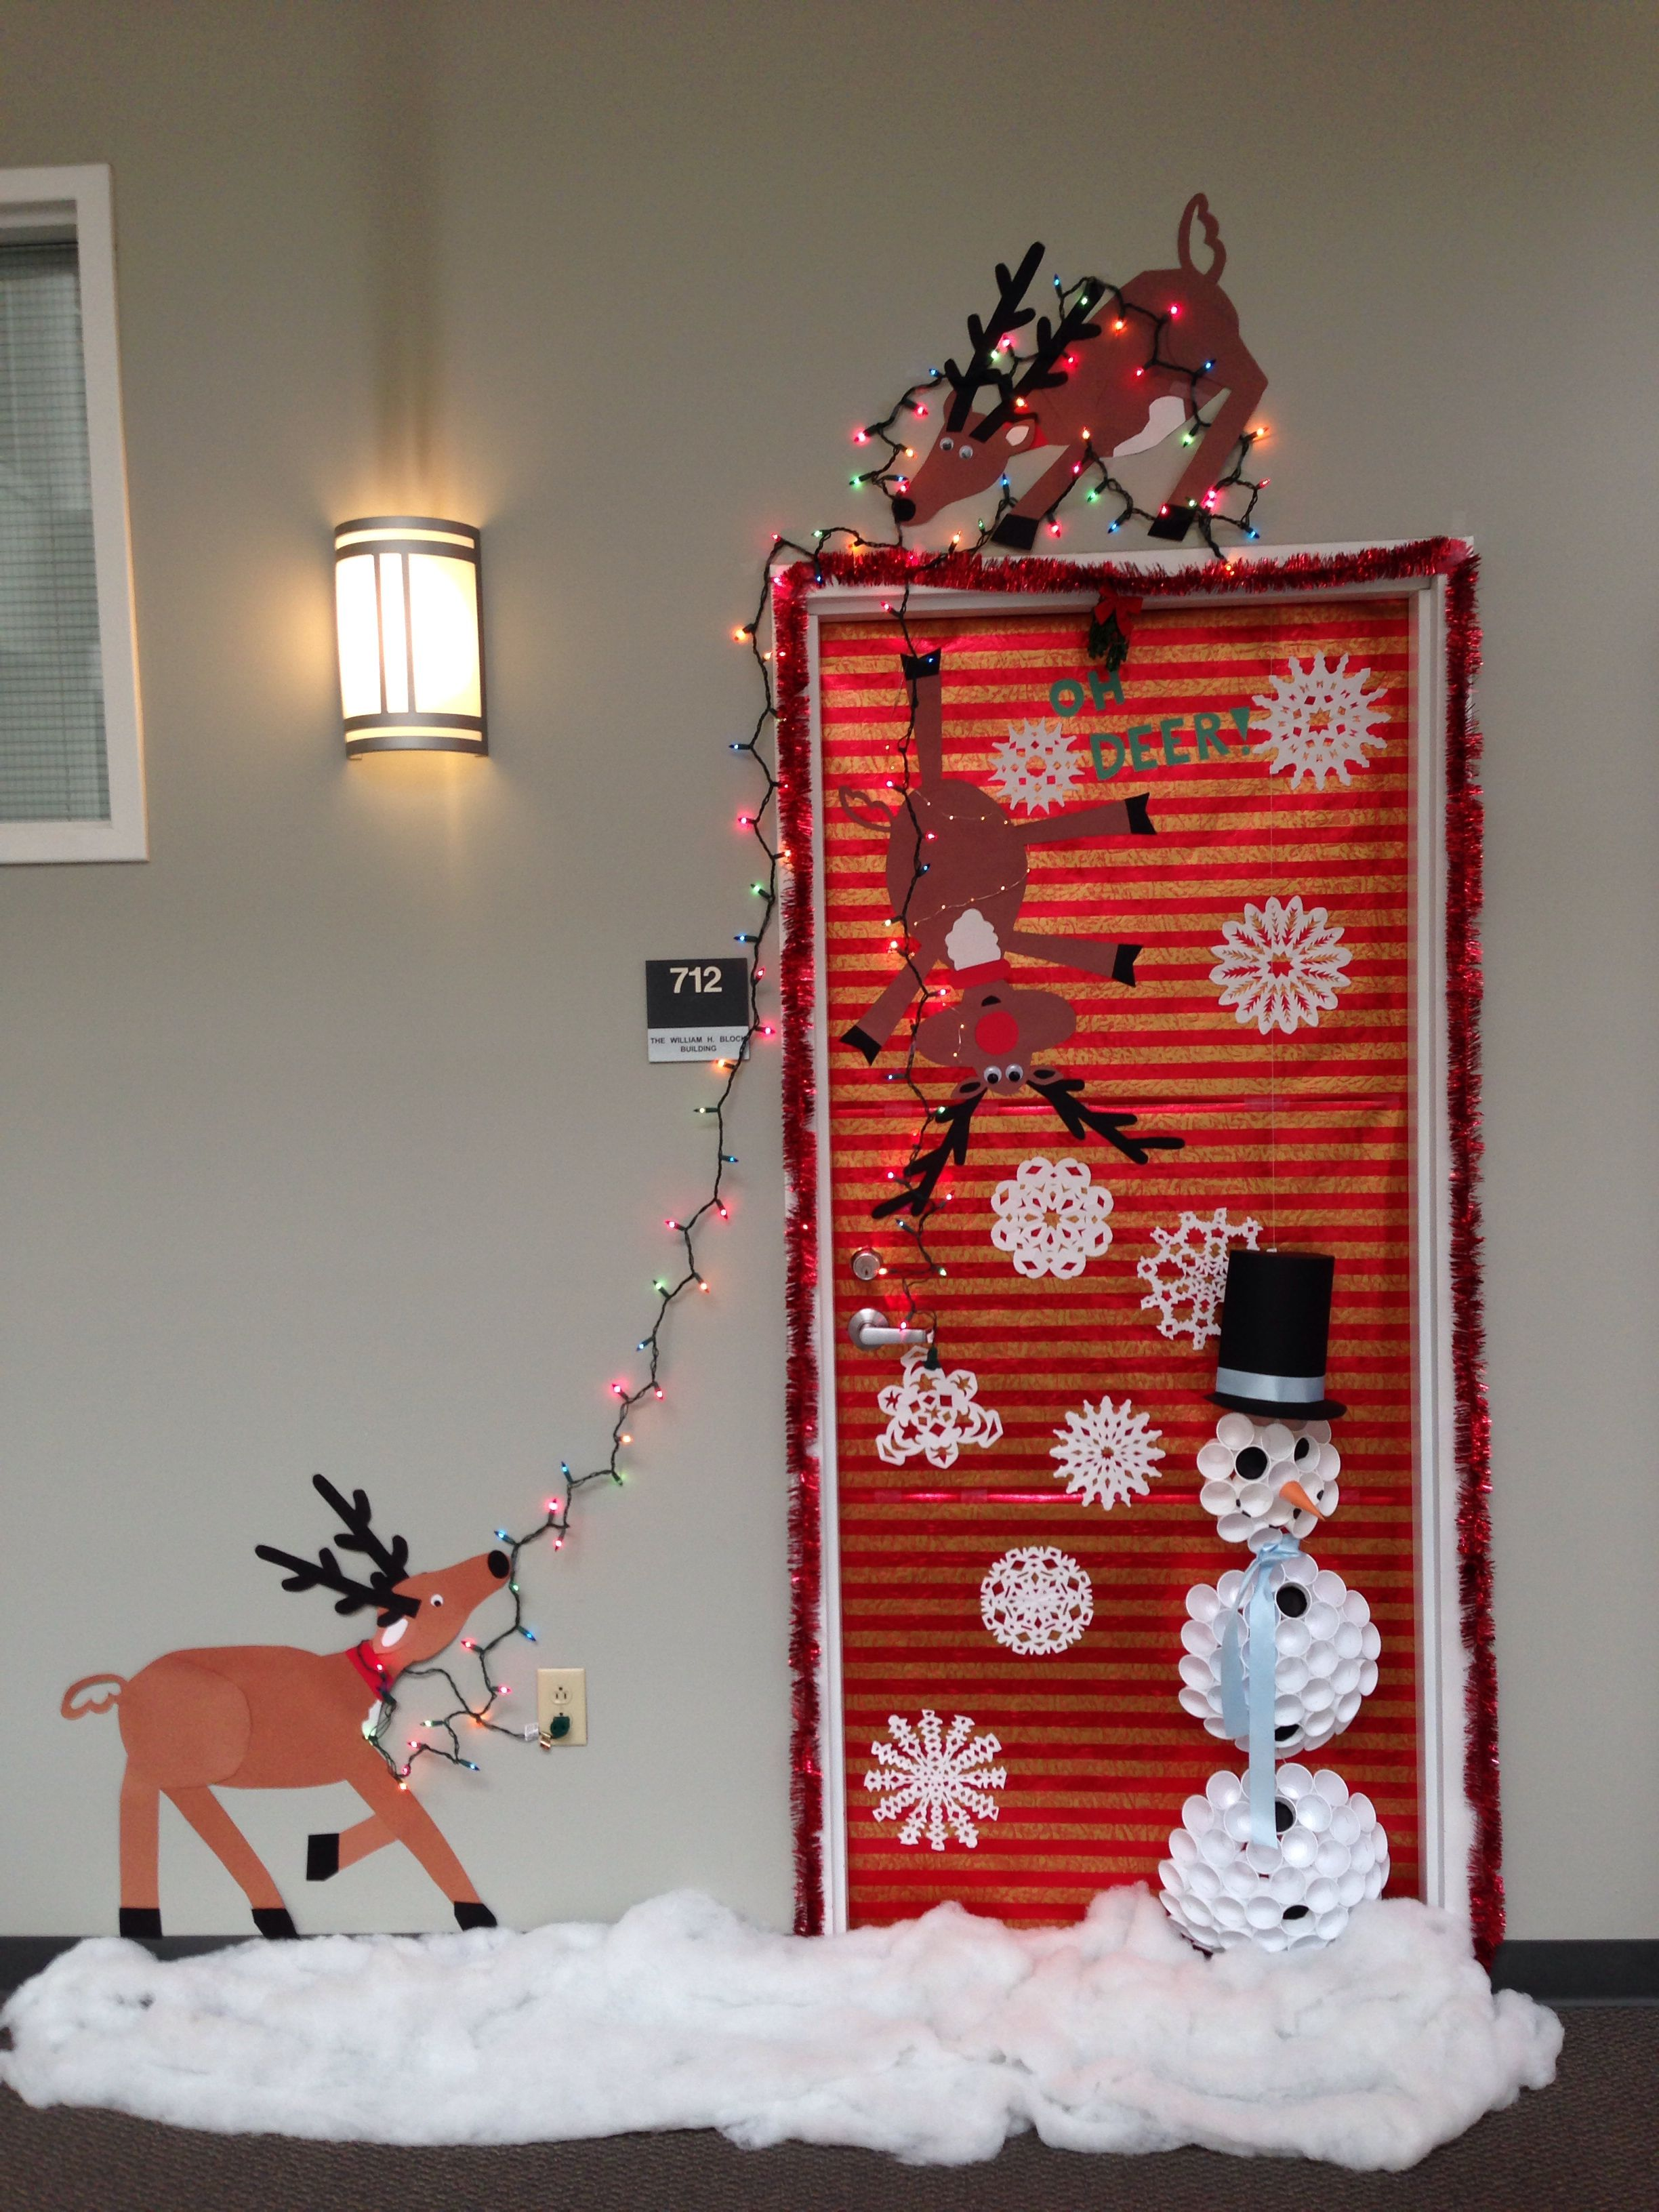 Our Christmas Door Decoration First Place Made Snowman With Dixie Cups R Christmas Classroom Door Diy Christmas Door Decorations Holiday Door Decorations